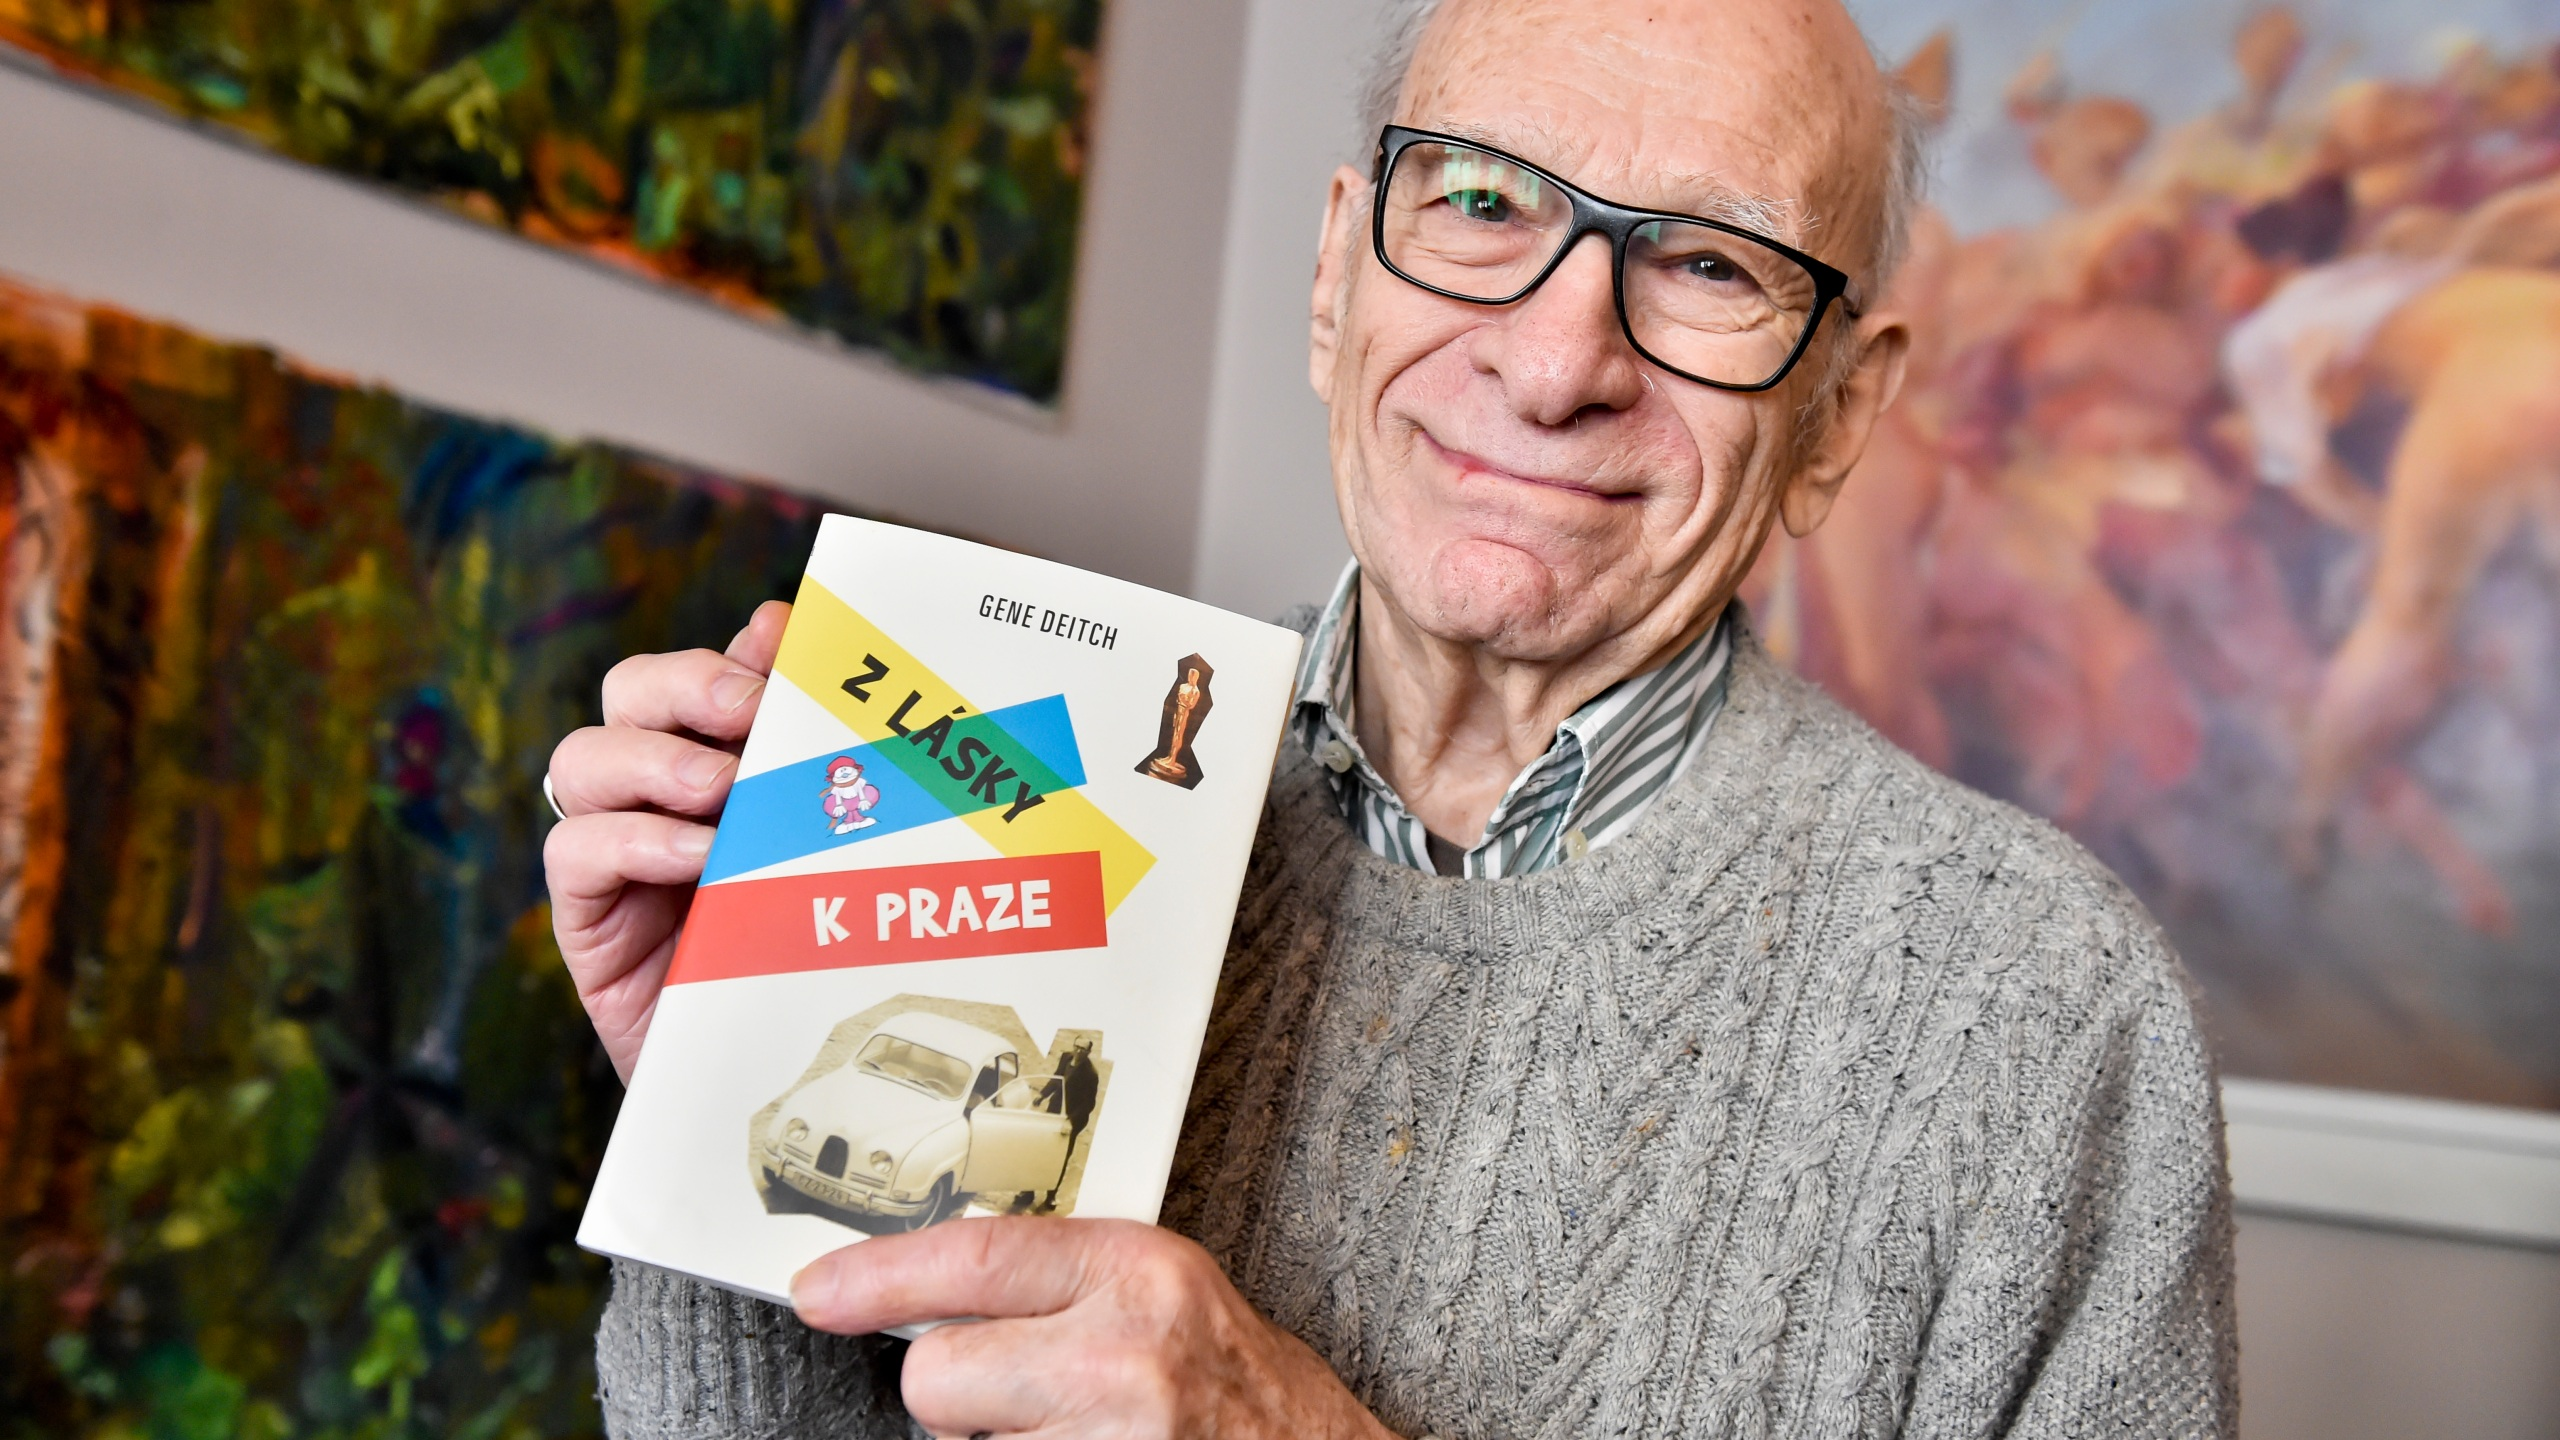 FILE - In this February 20, 2018 file photo the American director and animated film producer Gene Deitch poses for the photographer with his book of memories 'For the Love of Prague' in Prague, Czech Republic. Deitch, living in Prague with his Czech wife, animator and producer Zdenka Najmanova, has died at the age of 95 years. Deitch directed Czechoslovak-American animated film 'Munro' that won an Oscar for the Best Animated Short Film in 1961. (Vit Simanek/CTK via AP)